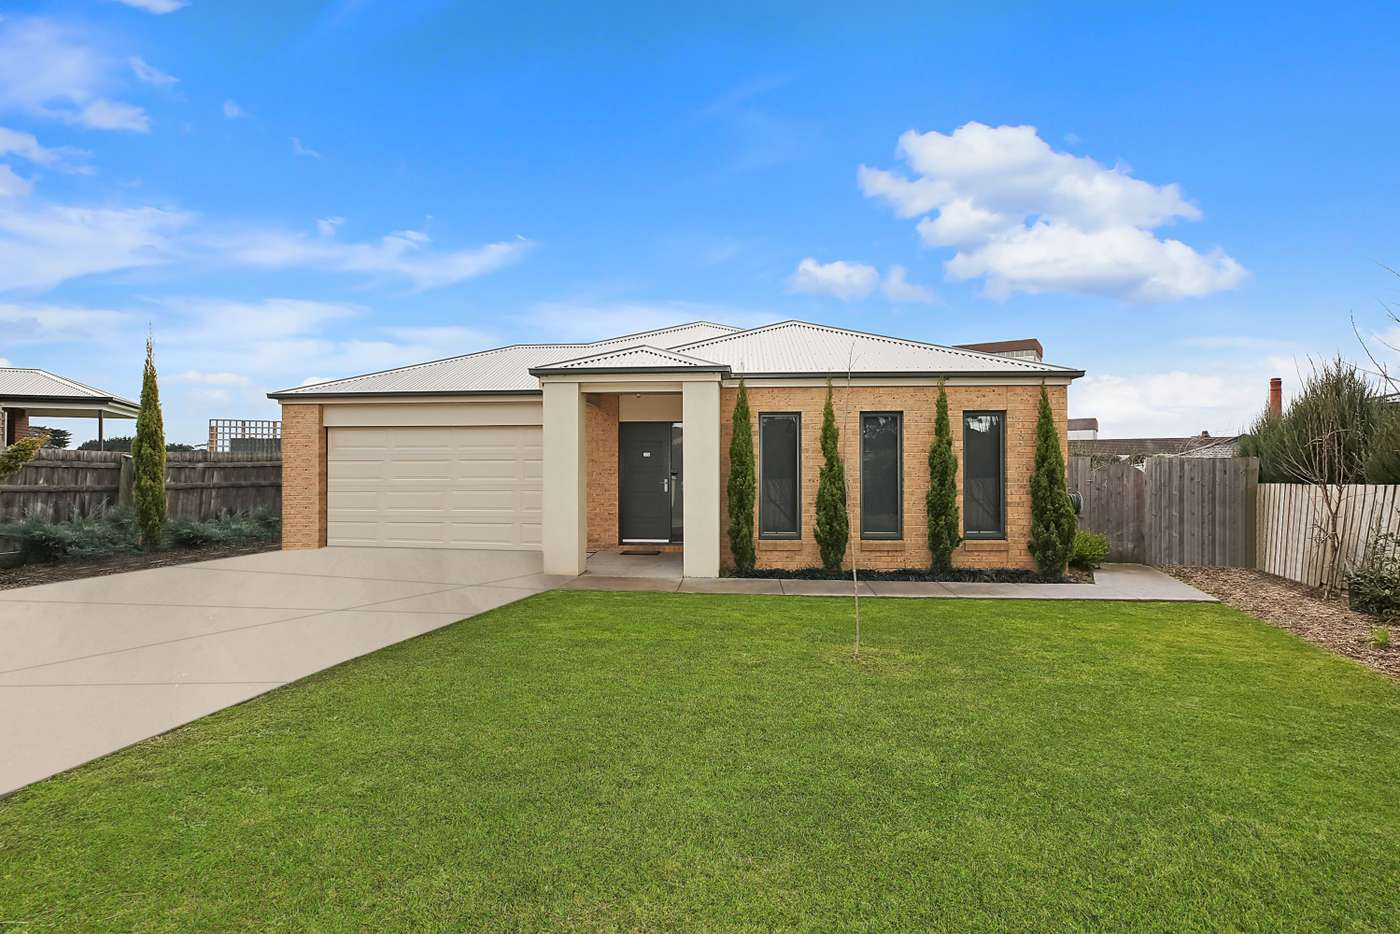 Main view of Homely house listing, 20 McAlpine Court, Camperdown VIC 3260